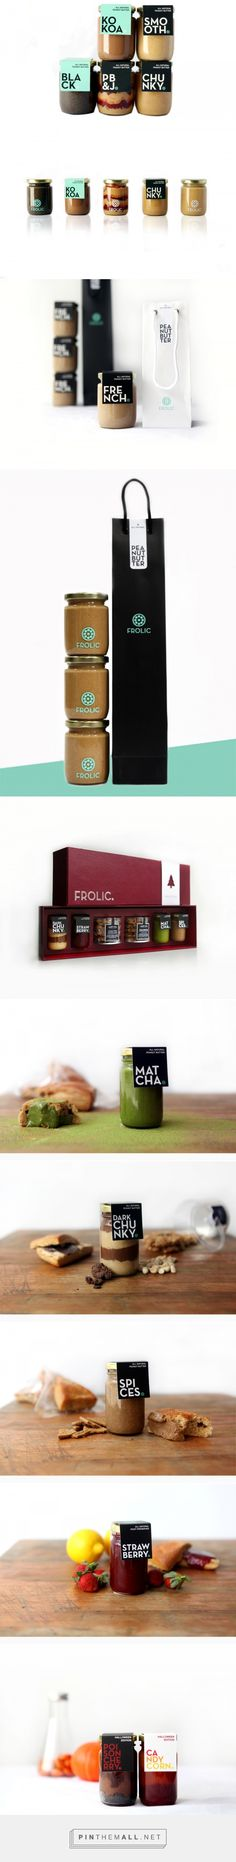 FROLIC Artisan Peanut Butter Packaging by Grace Florencia Candra & Fransisca Augustine Candra | Fivestar Branding Agency – Design and Branding Agency & Curated Inspiration Gallery  #packaging #foodpackaging #packagingdesign #design #designinspiration